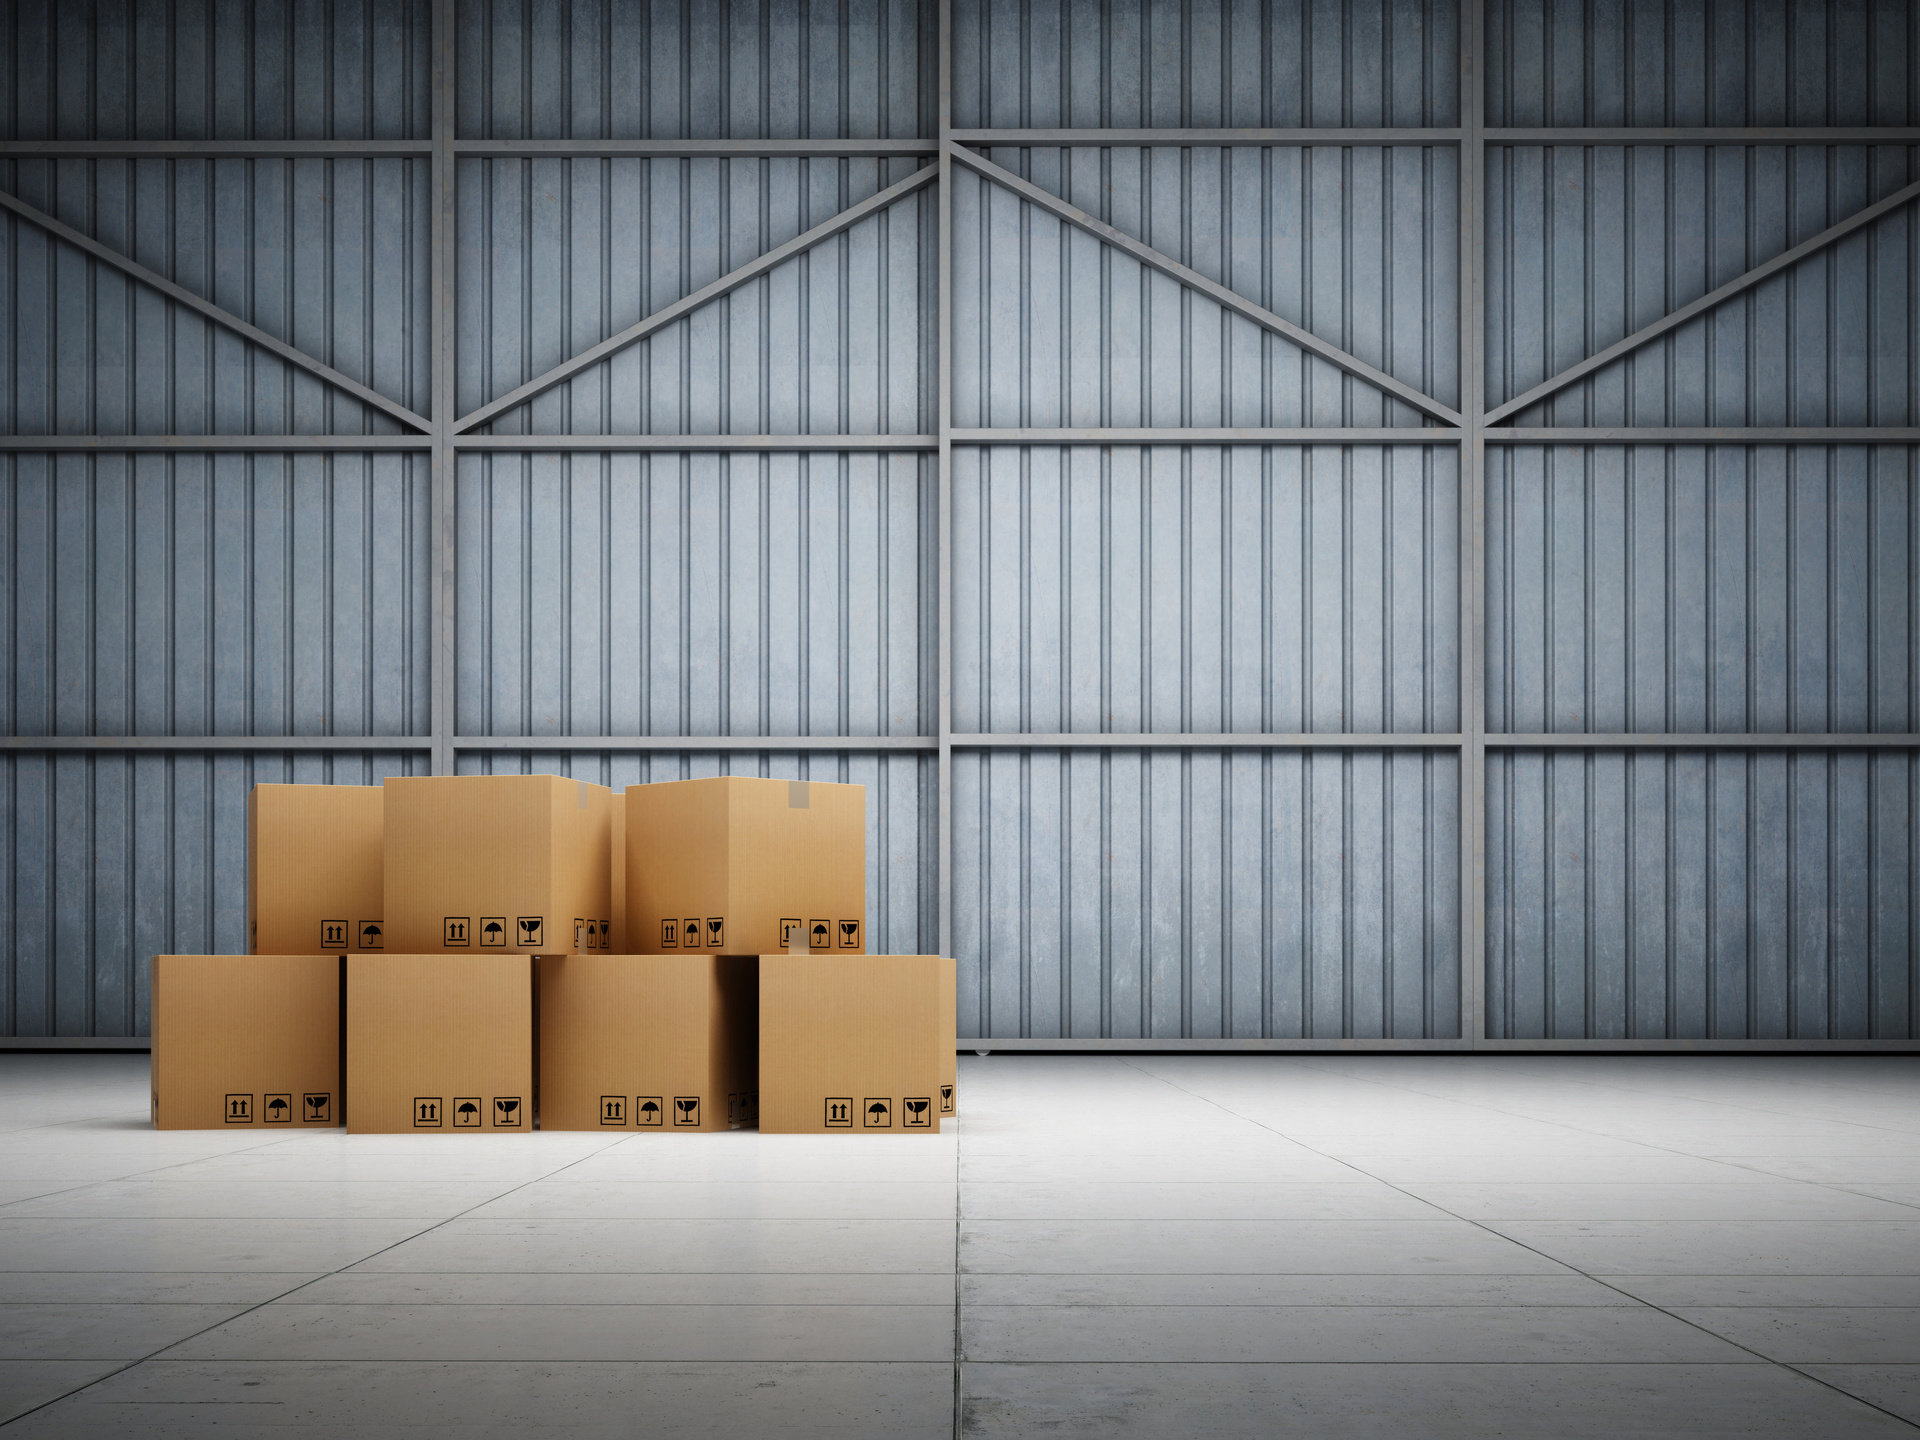 A record-breaking year for warehouse and logistics space ahead of us